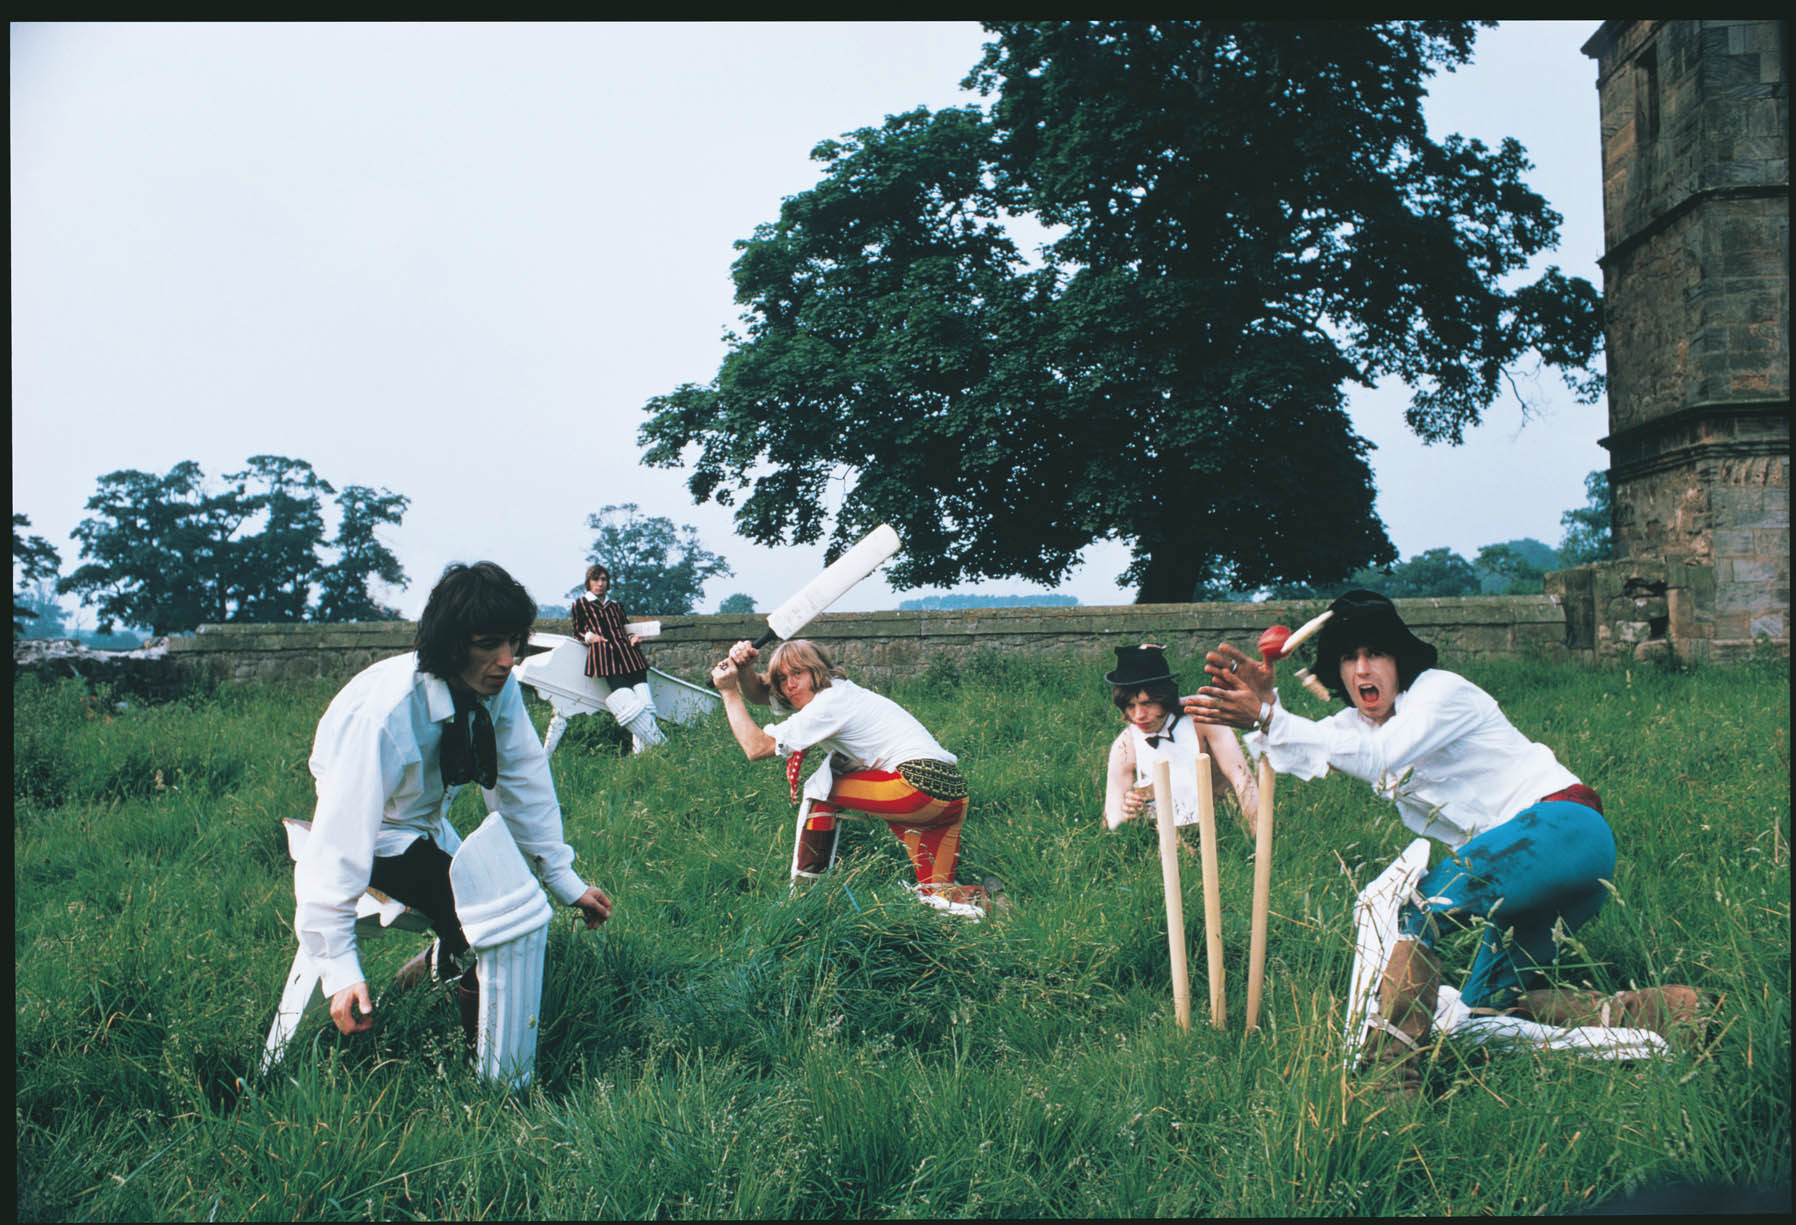 Stones playing cricket by Michael Joseph